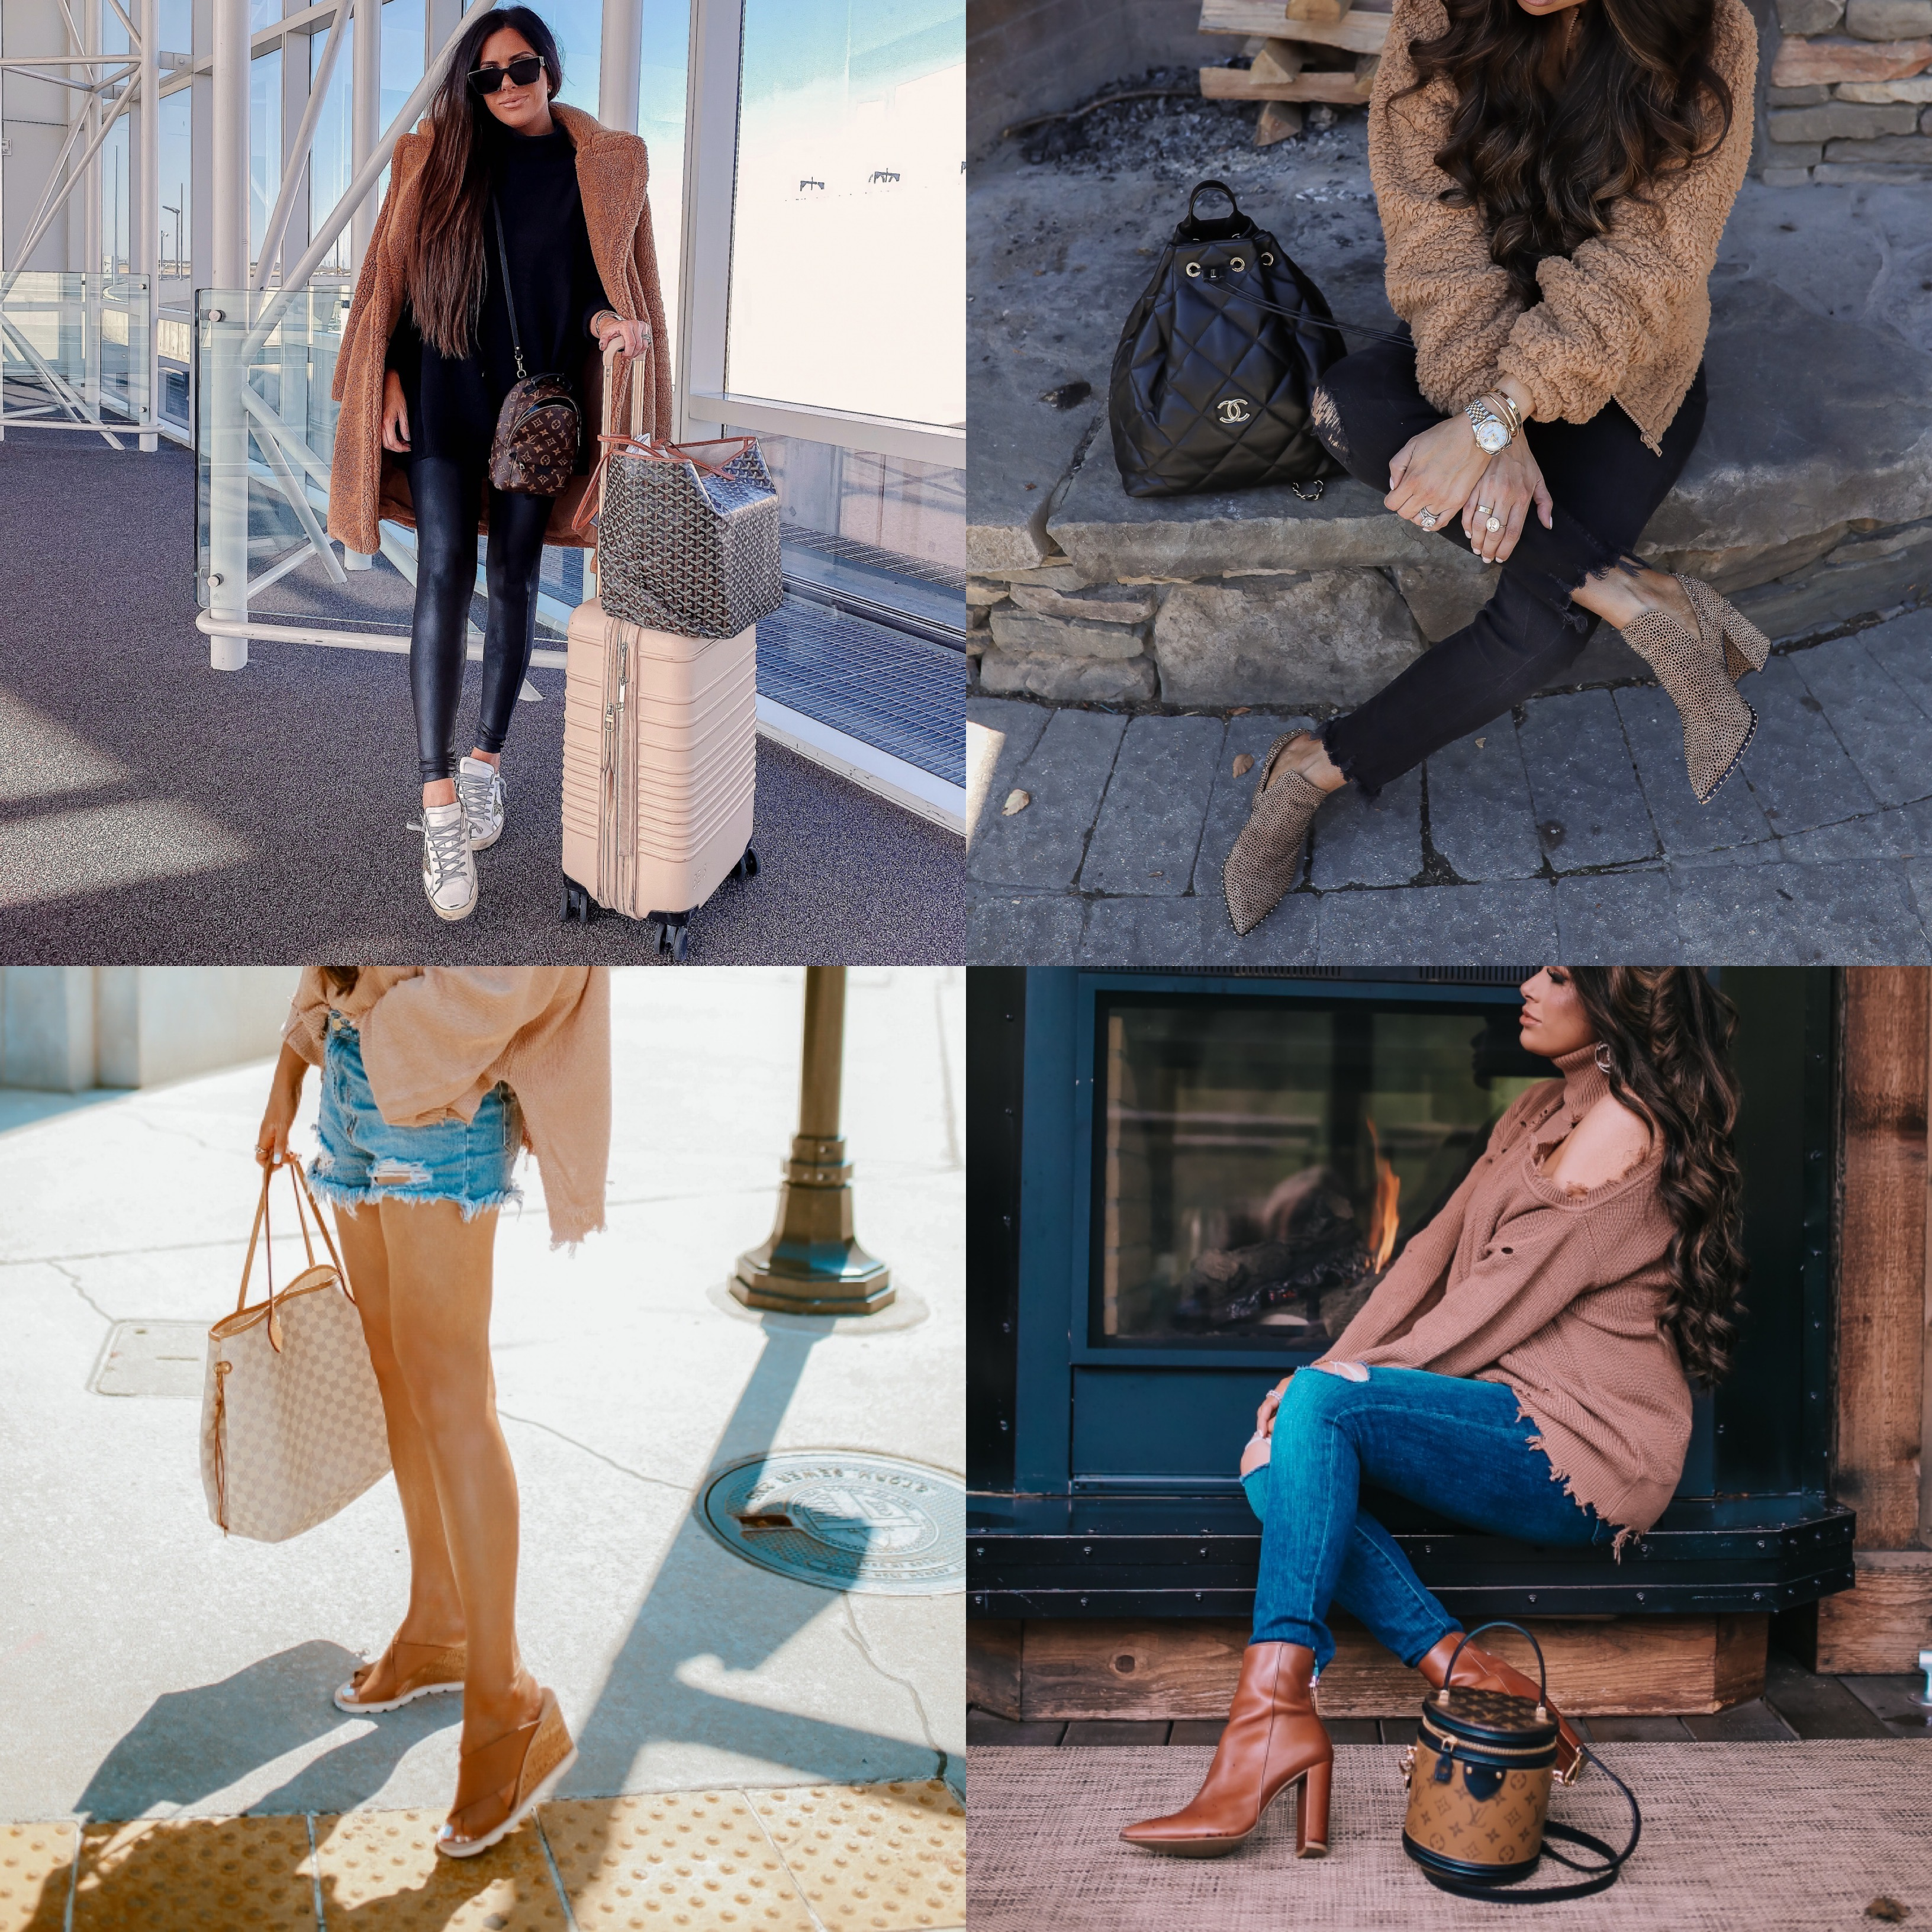 best of shoes 2019, golden goose, steven madden, emily gemma | best athletic leggings lululemon, zella, spanx review | Best Wardrobe Essentials 2019👖 | Part 2 by popular US fashion blog, The Sweetest Thing: collage image of a woman wearing Nordstrom Superstar Low Top Sneaker GOLDEN GOOSE, Dillard's Gianni Bini Daveigh Cheetah Print Suede Studded Western Block Heel Booties, Steve Madden FLORETTA COGNAC LEATHER, and Steve Madden TRISTA COGNAC LEATHER.